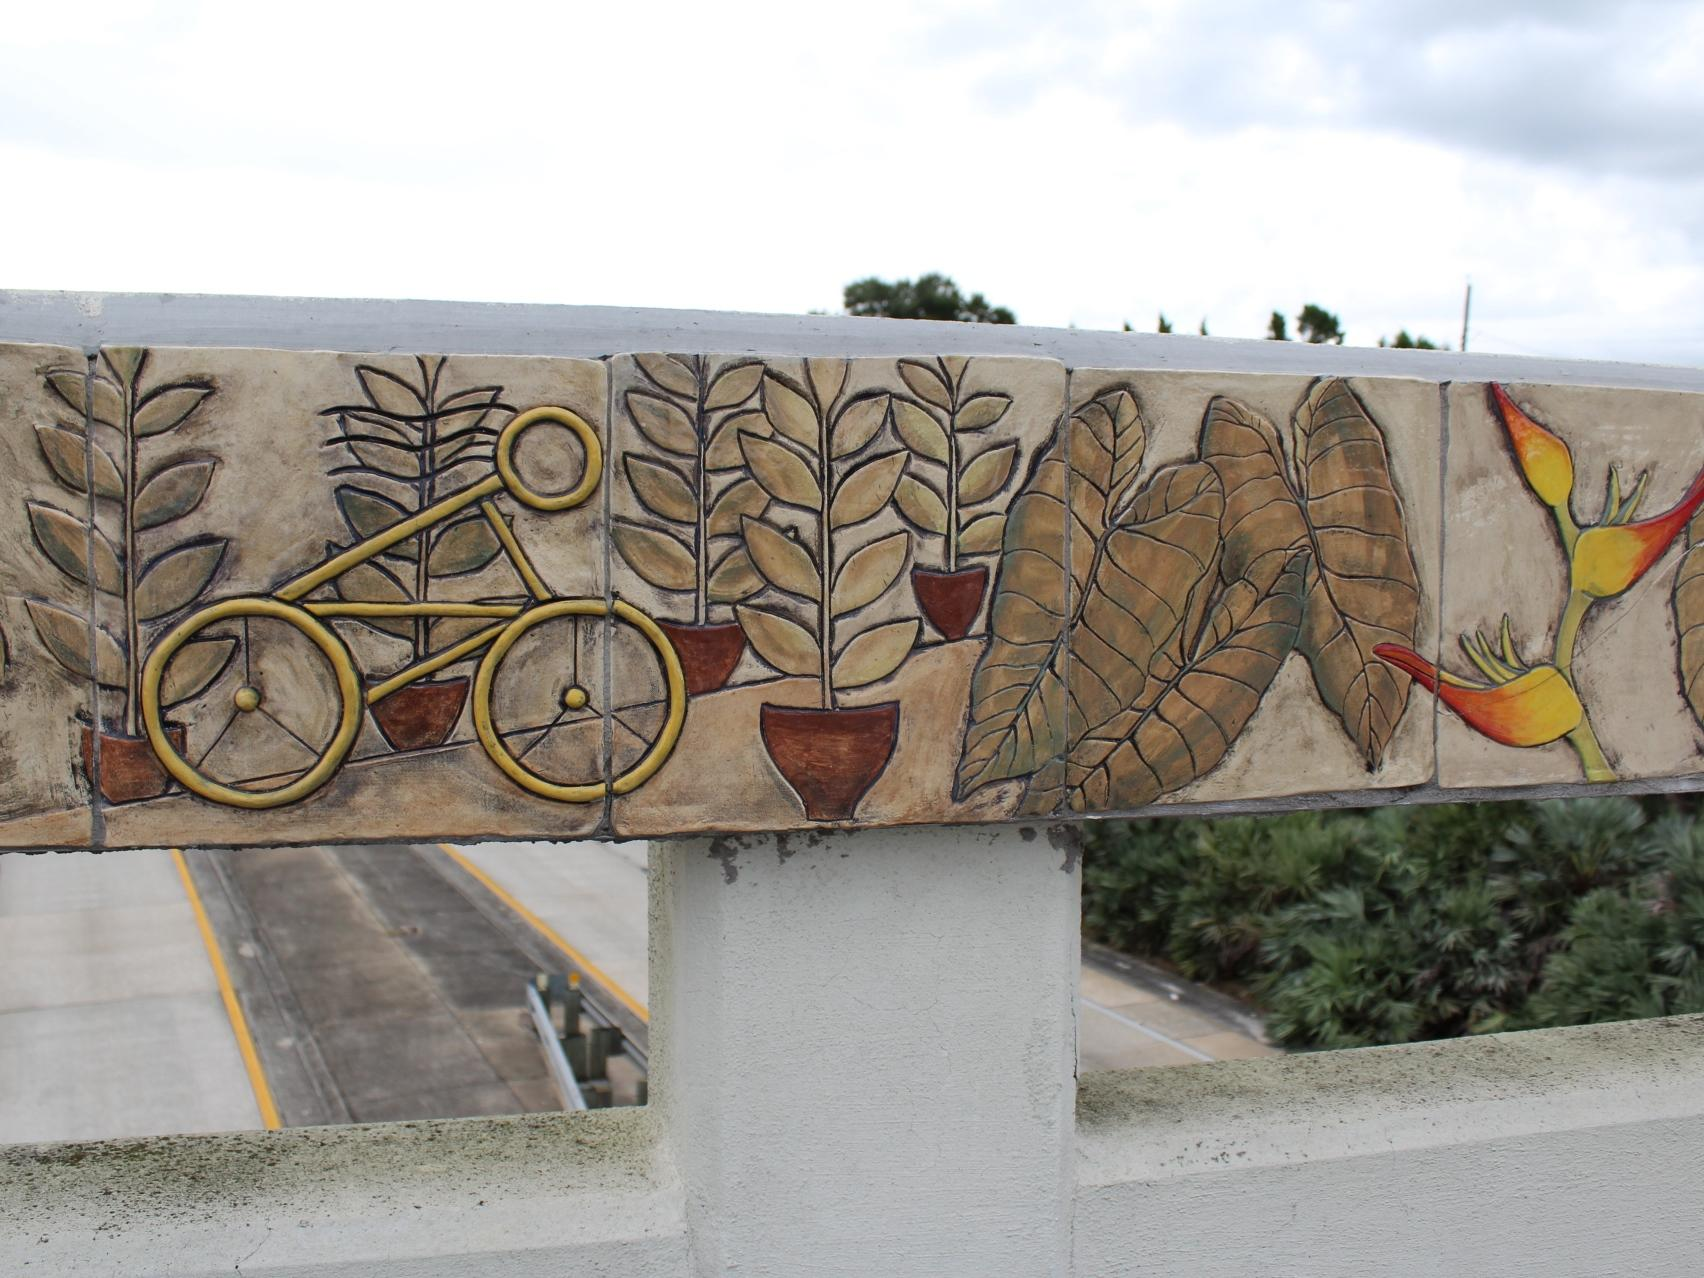 Lakeland 39 s platform art showcasing local art wusf news for Ceramic mural art